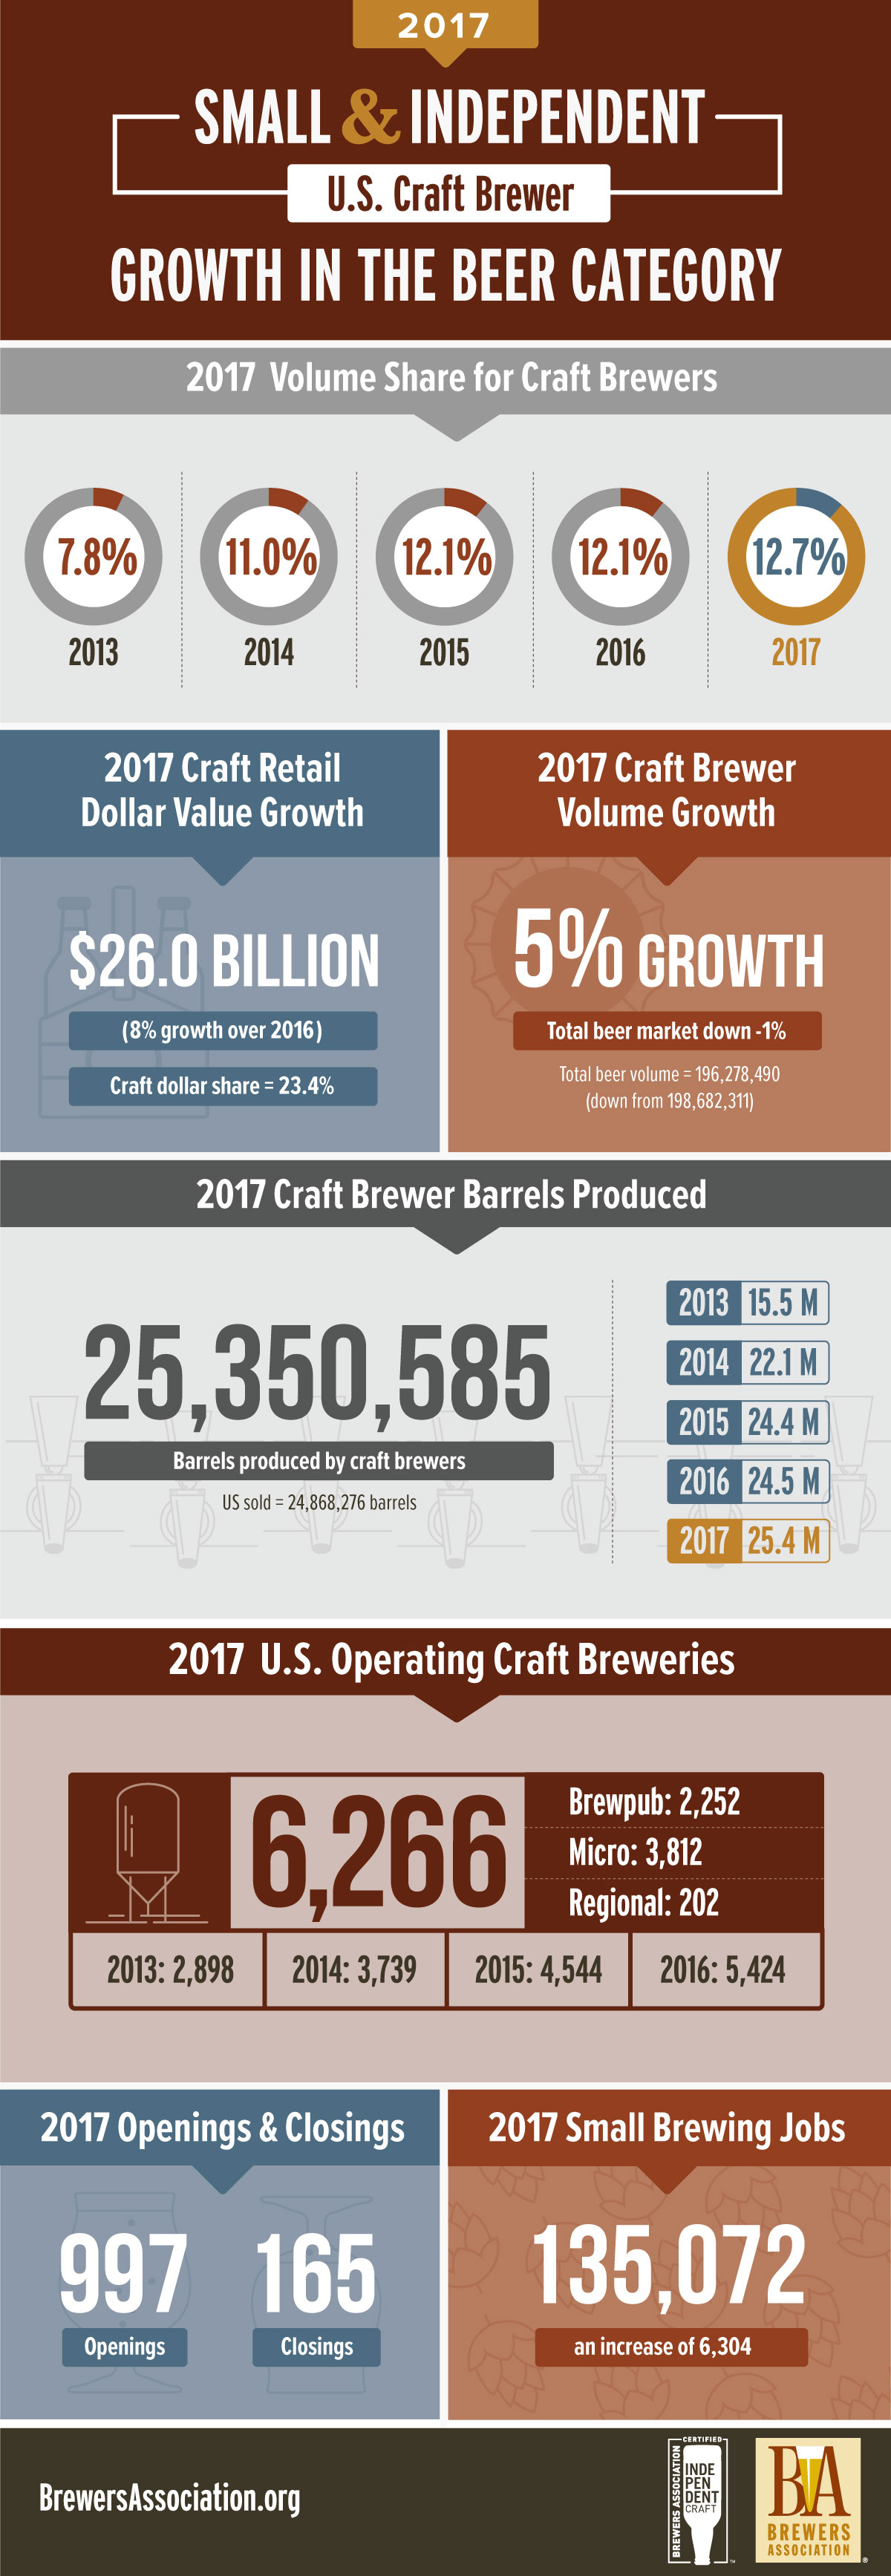 2017 BA growth infographic